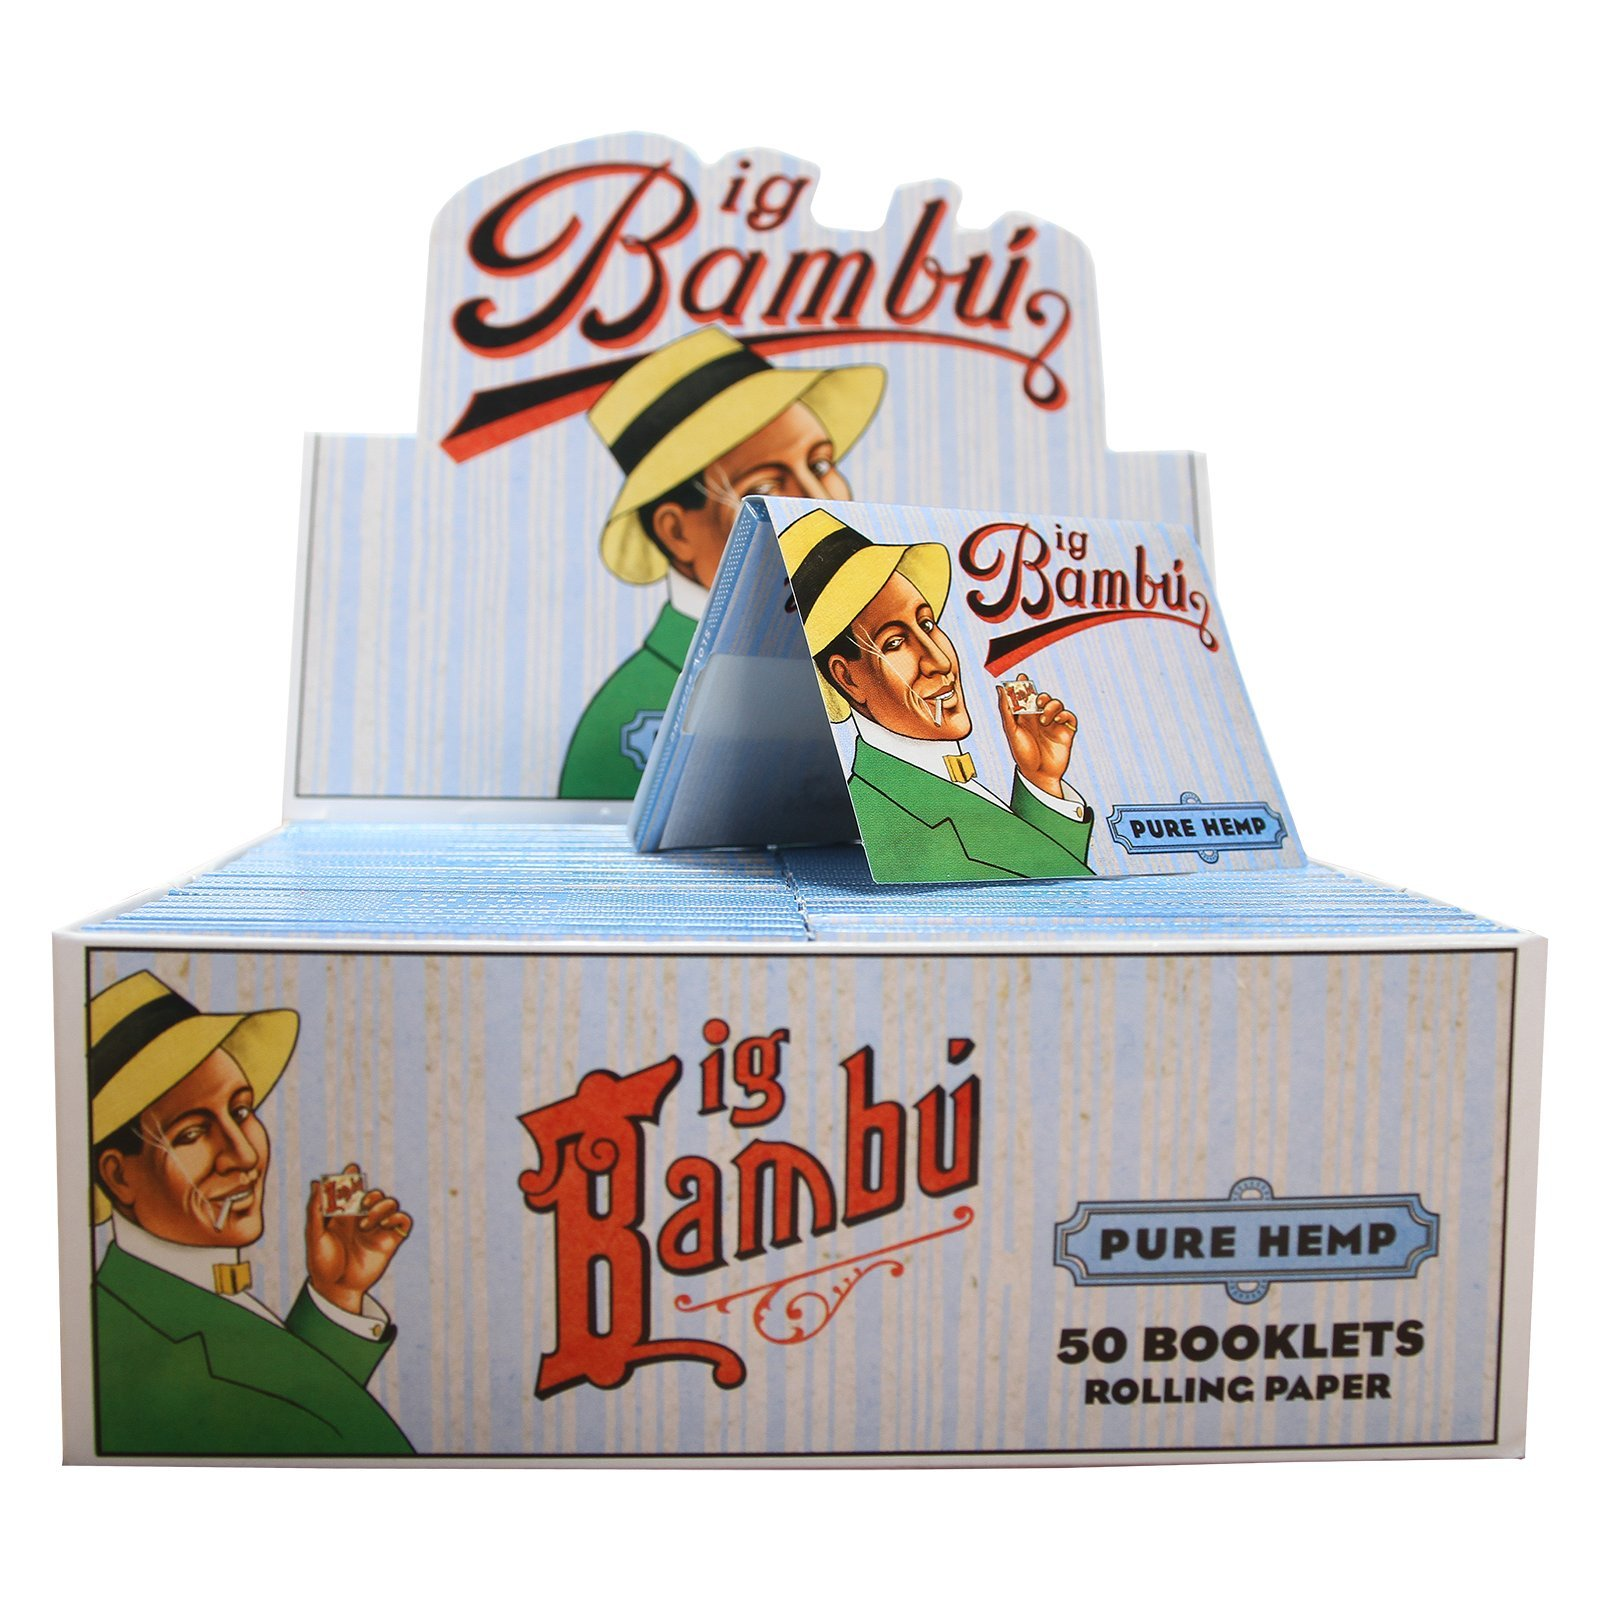 Bambu - Big Bambu Pure Hemp Rolling Paper (50 Booklets)